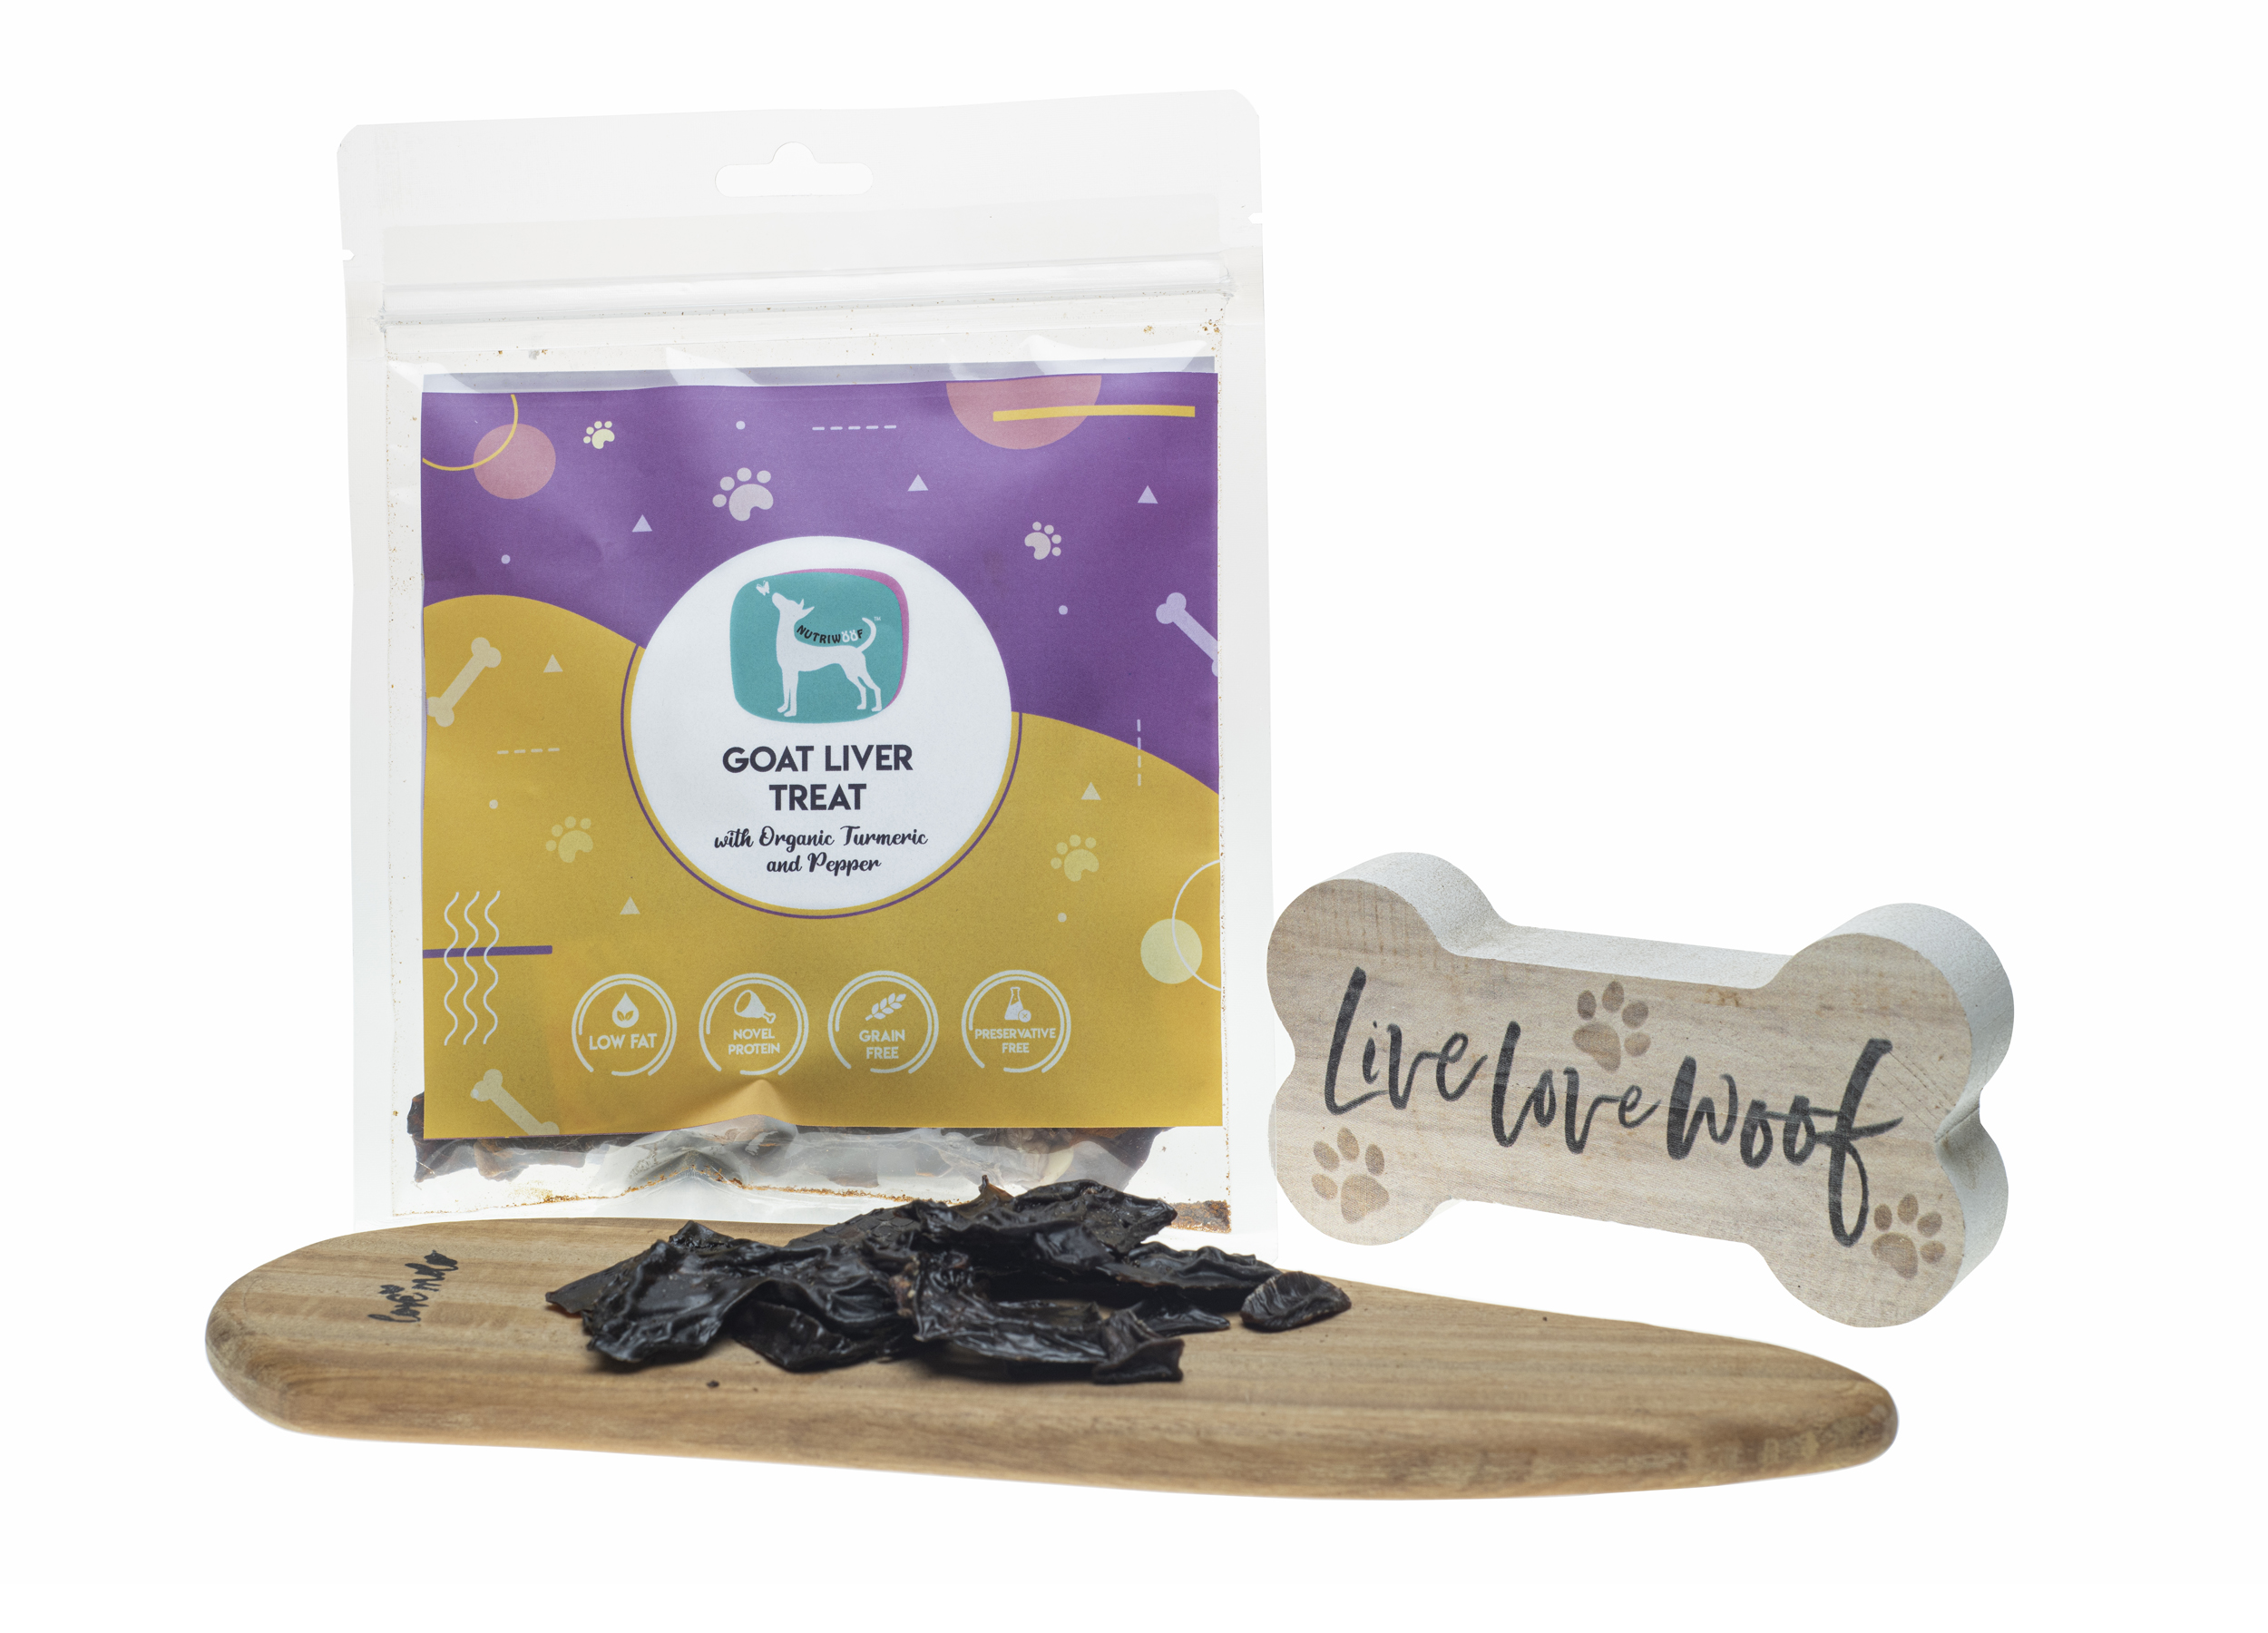 Nutriwoof products